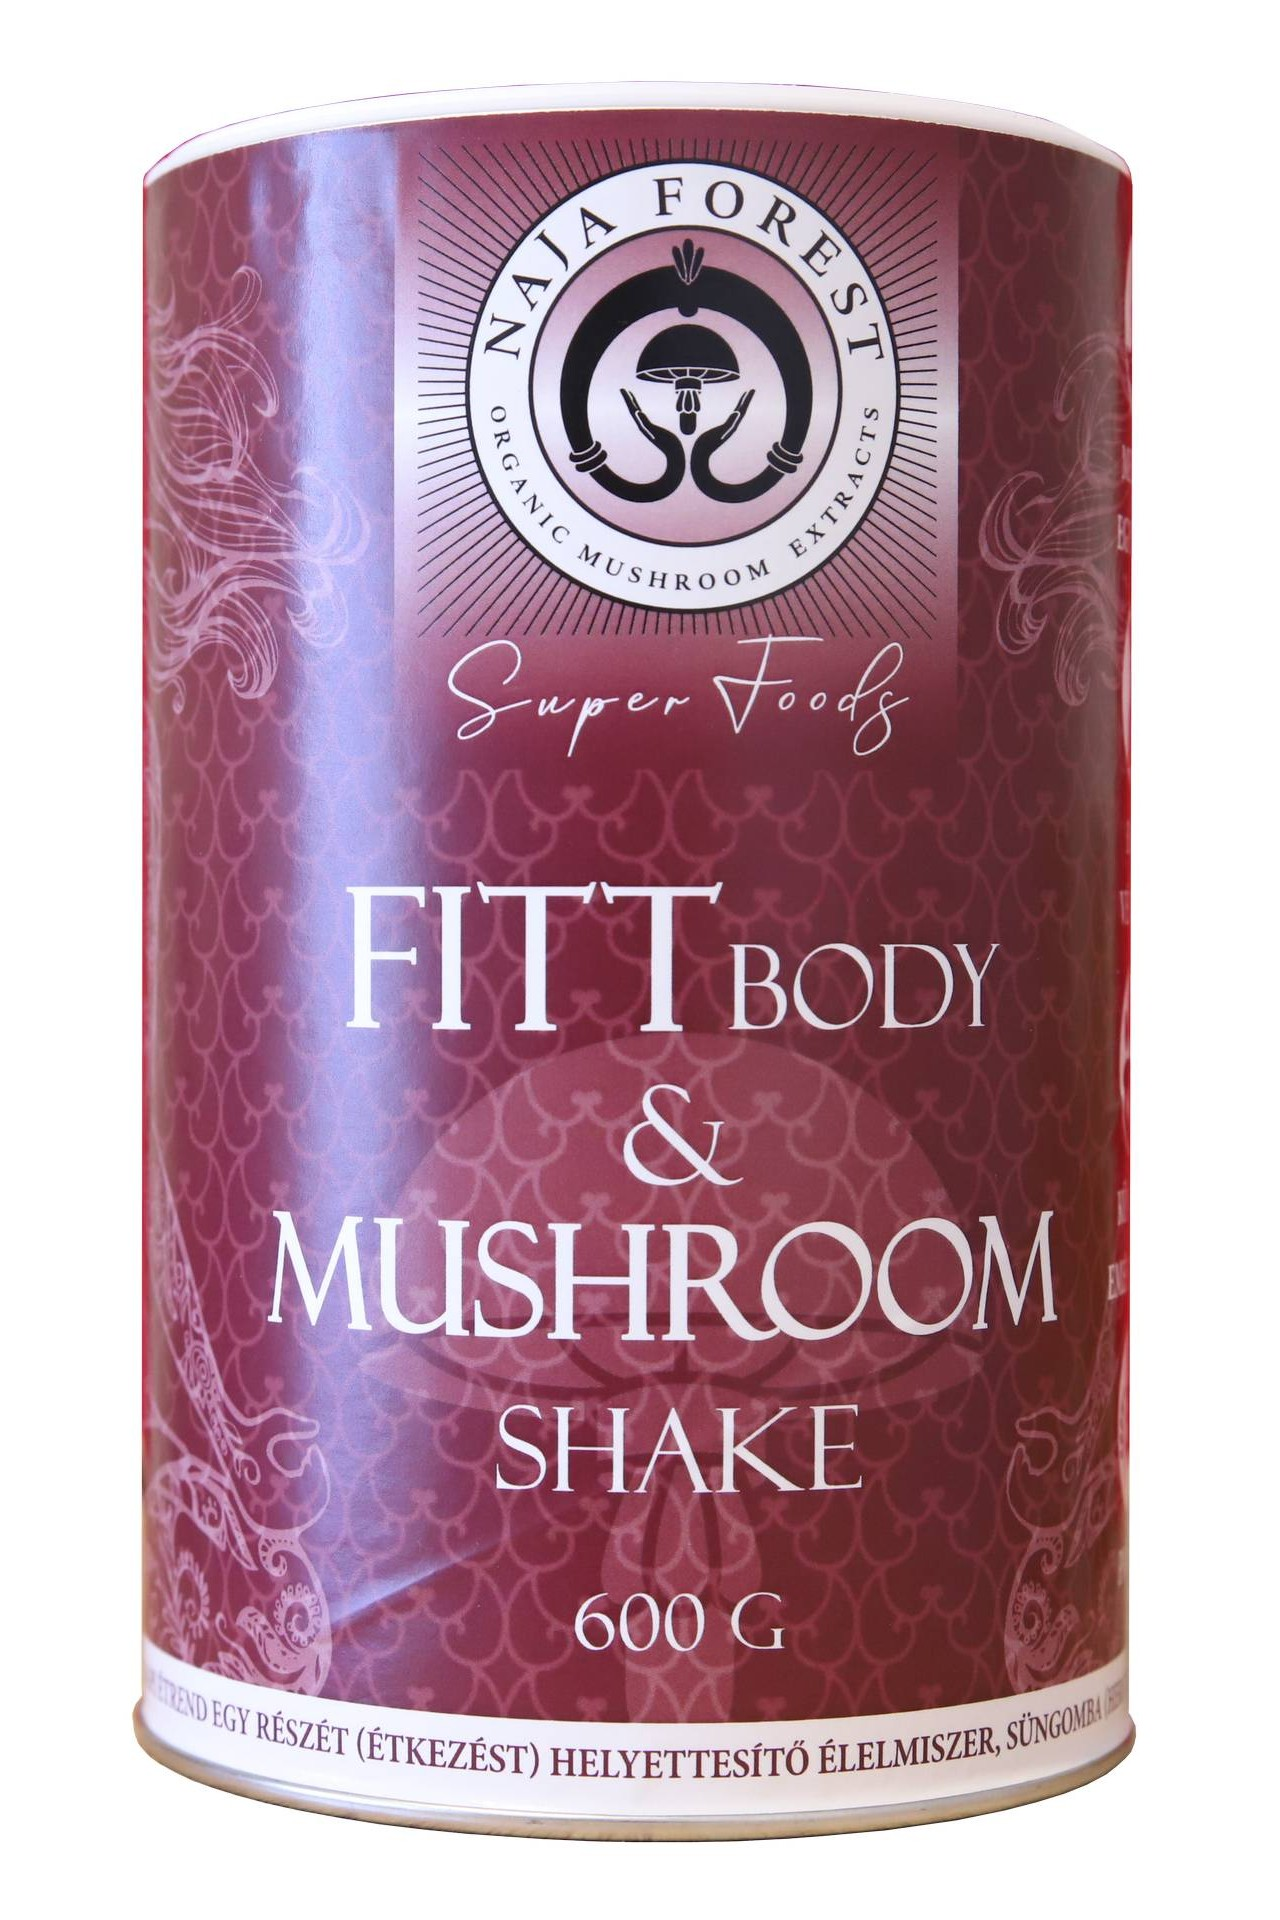 FittBodyMushroom Shake